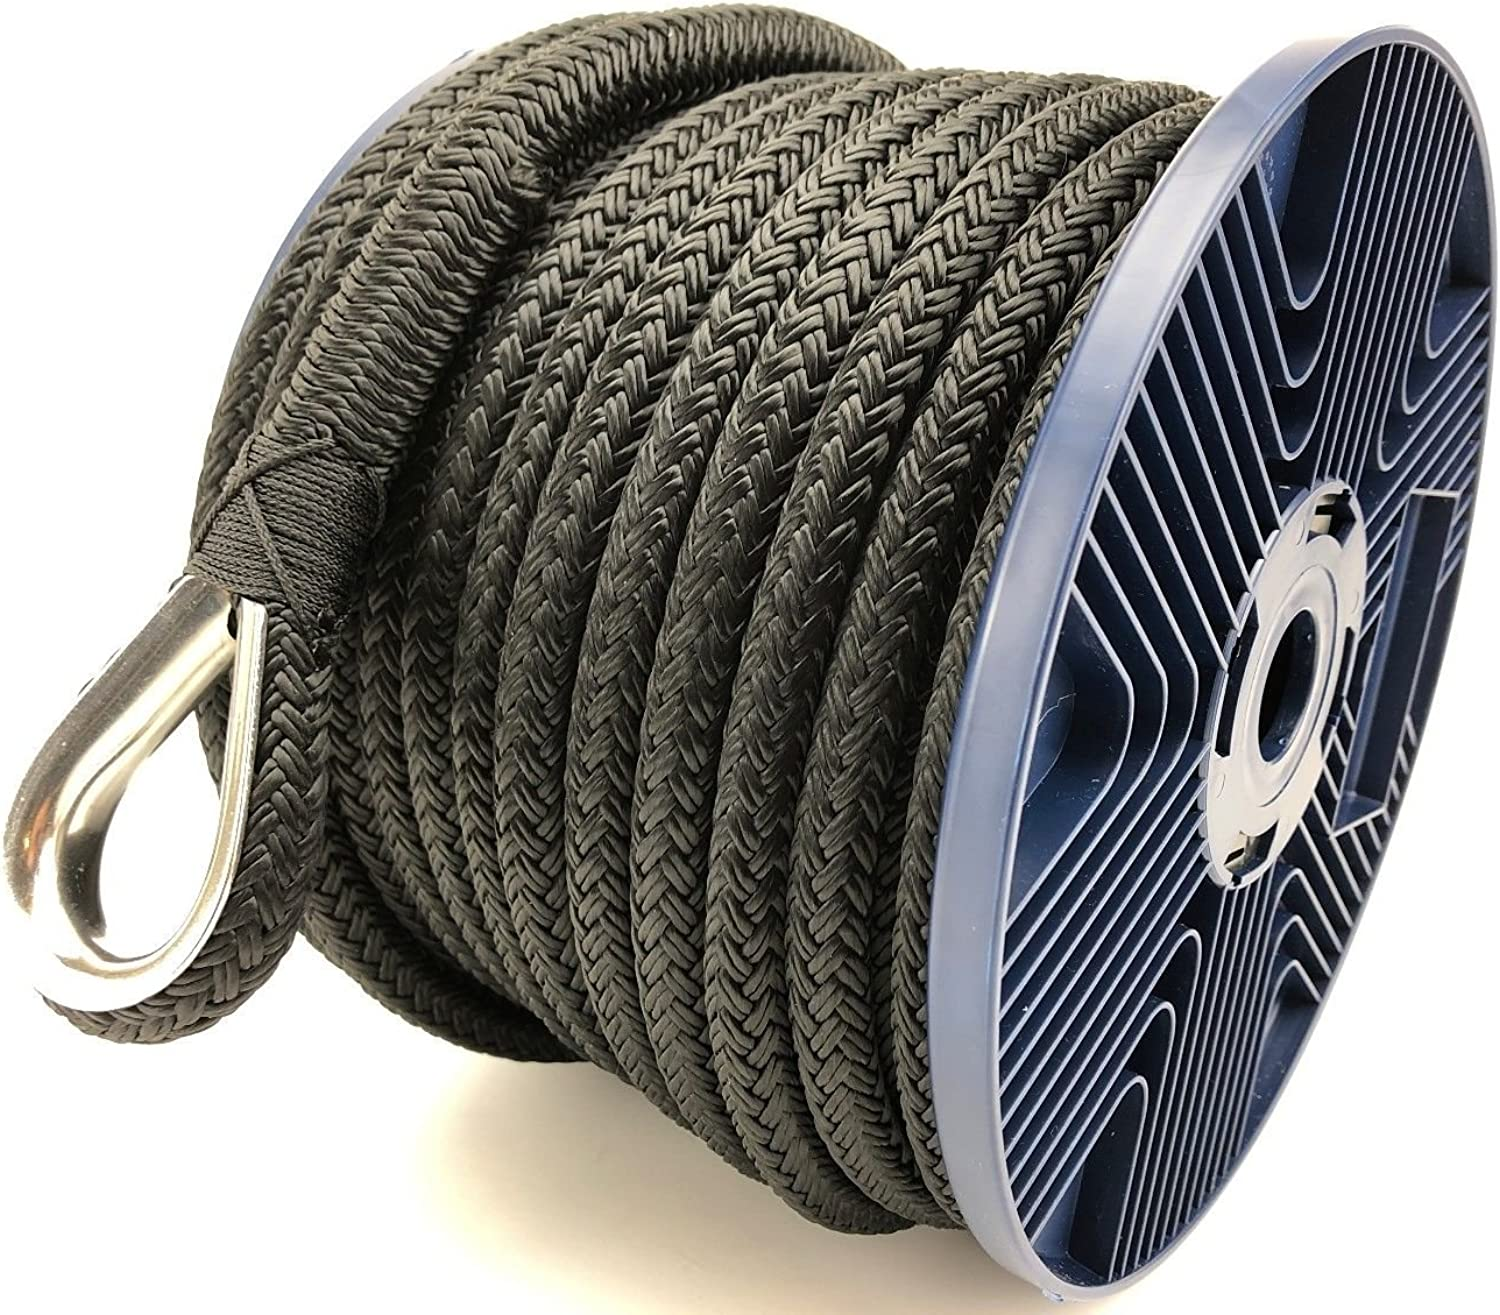 RopeServices UK 12 mm Schwarz Double Braid Polyester Pre-Spliced Anker Seil X 75 Meter B07F2HY59Z  Geschäft